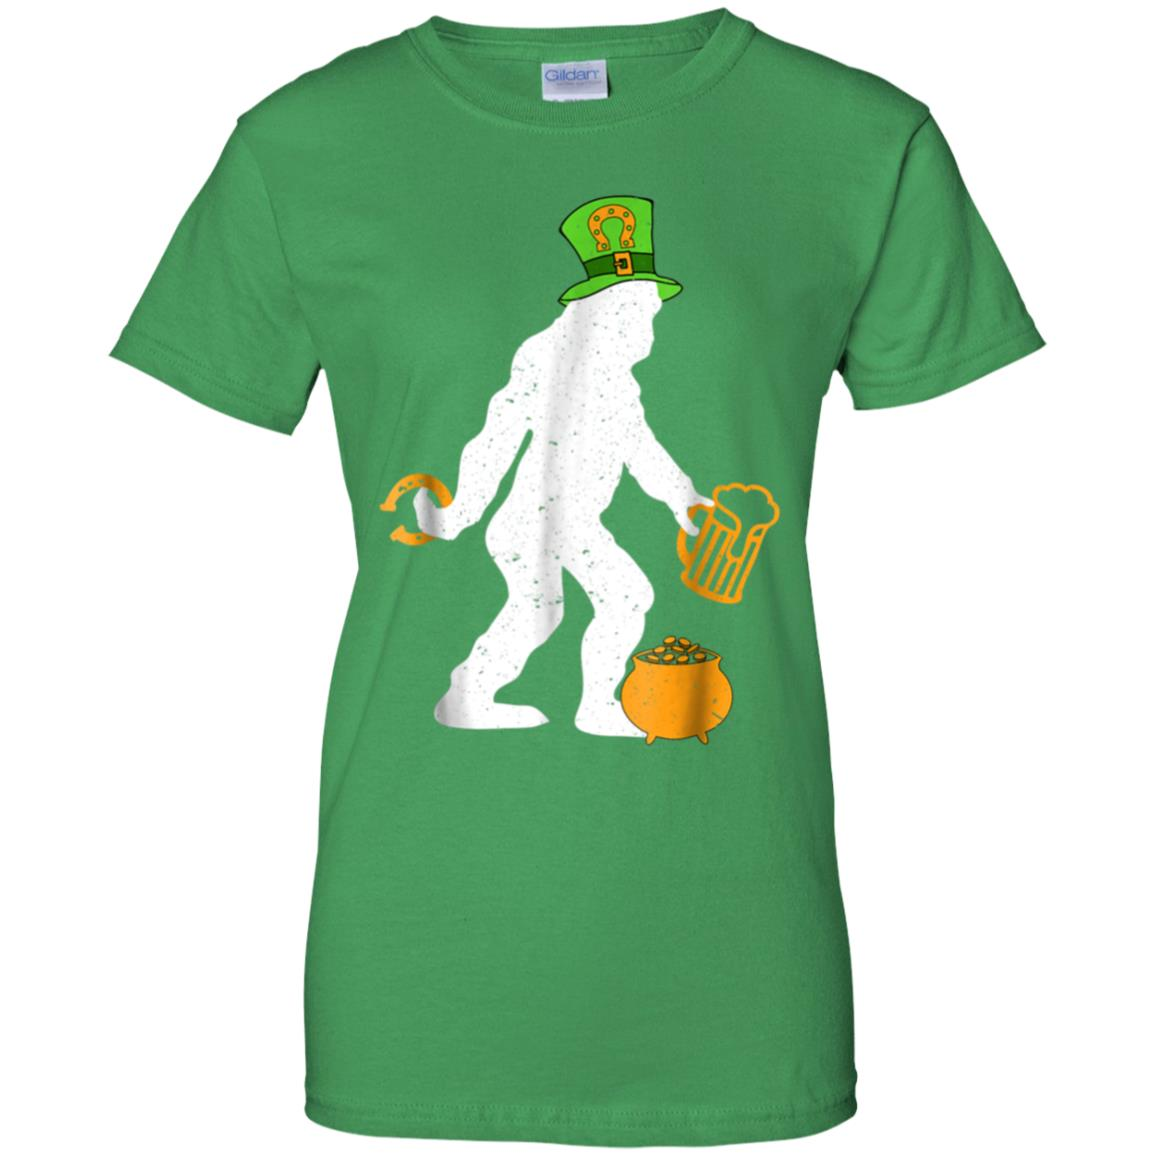 b0d3b50e683 Awesome bigfoot st patrick s day shirt funny st paddy s day tee ...